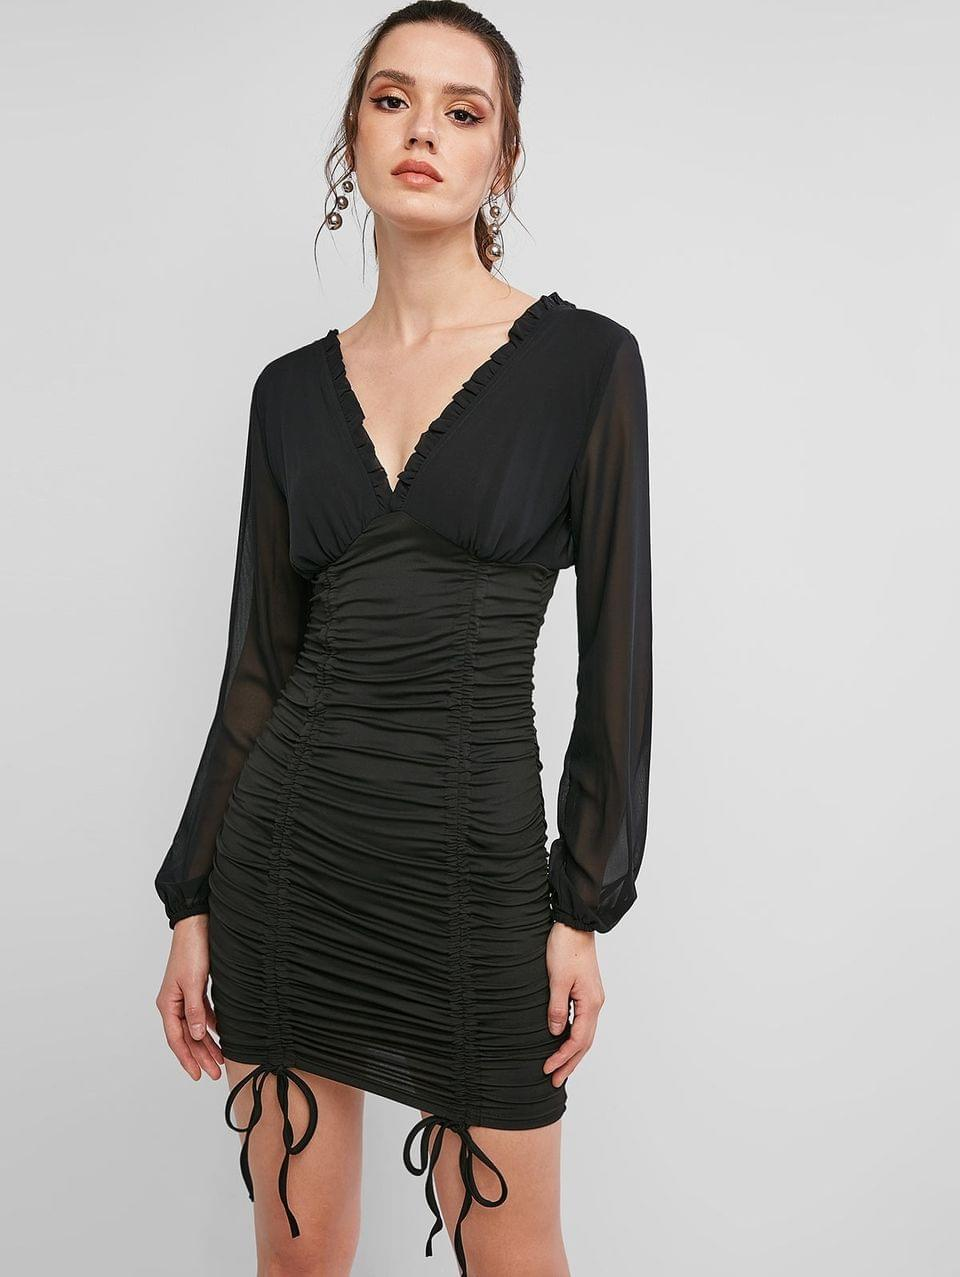 Women's Long Sleeve Cinched Double V Bodycon Dress - Black S